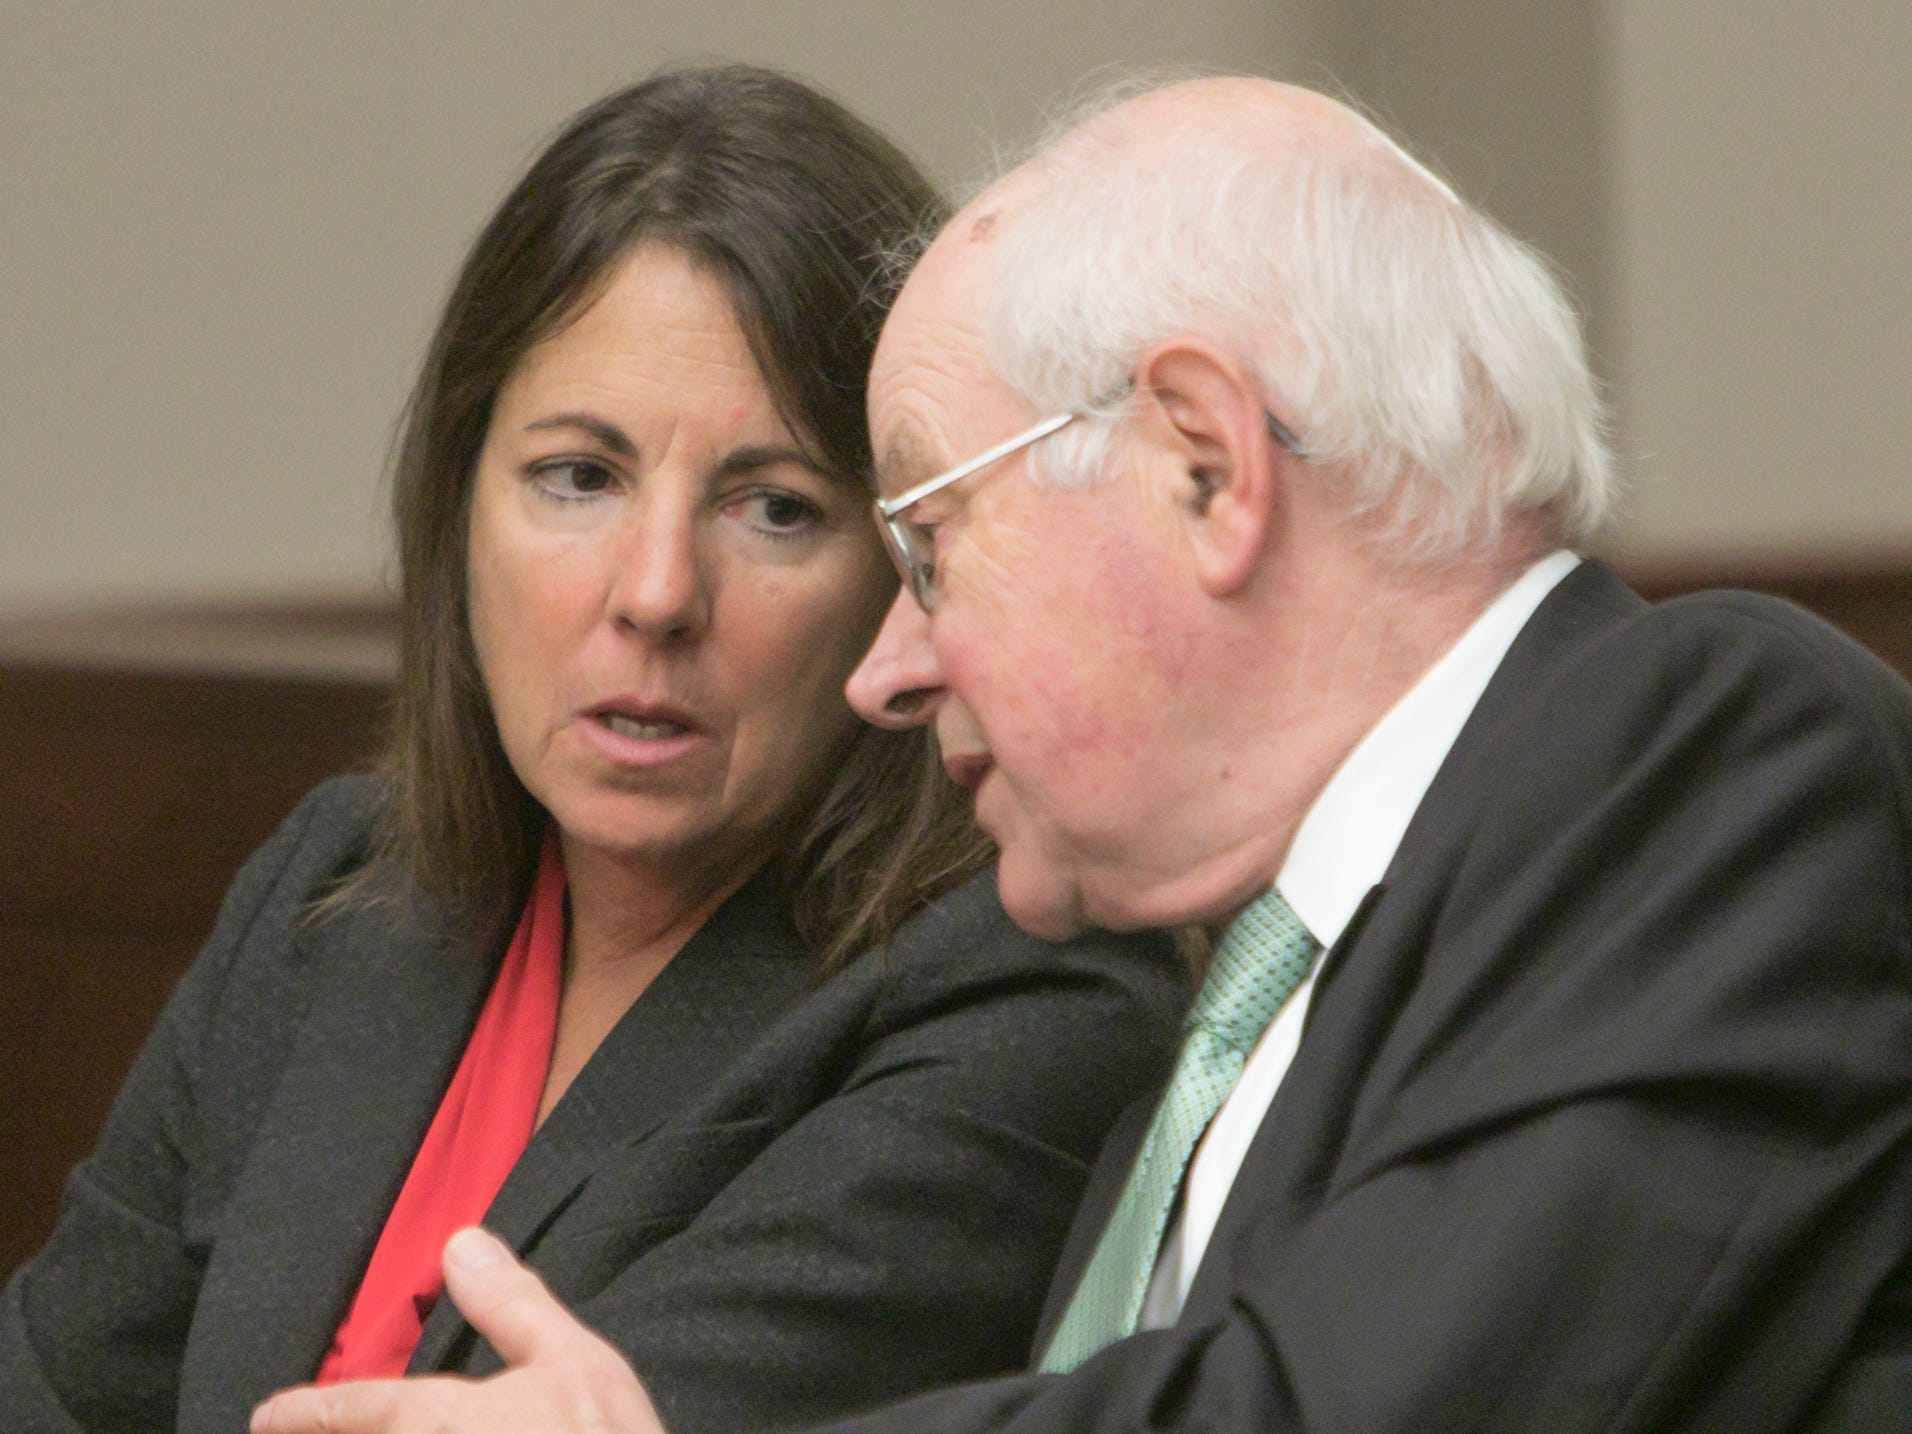 Judge Theresa Brennan confers with her attorney Dennis Kolenda at a Judicial Tenure Commission hearing Thursday, Oct. 4, 2018.